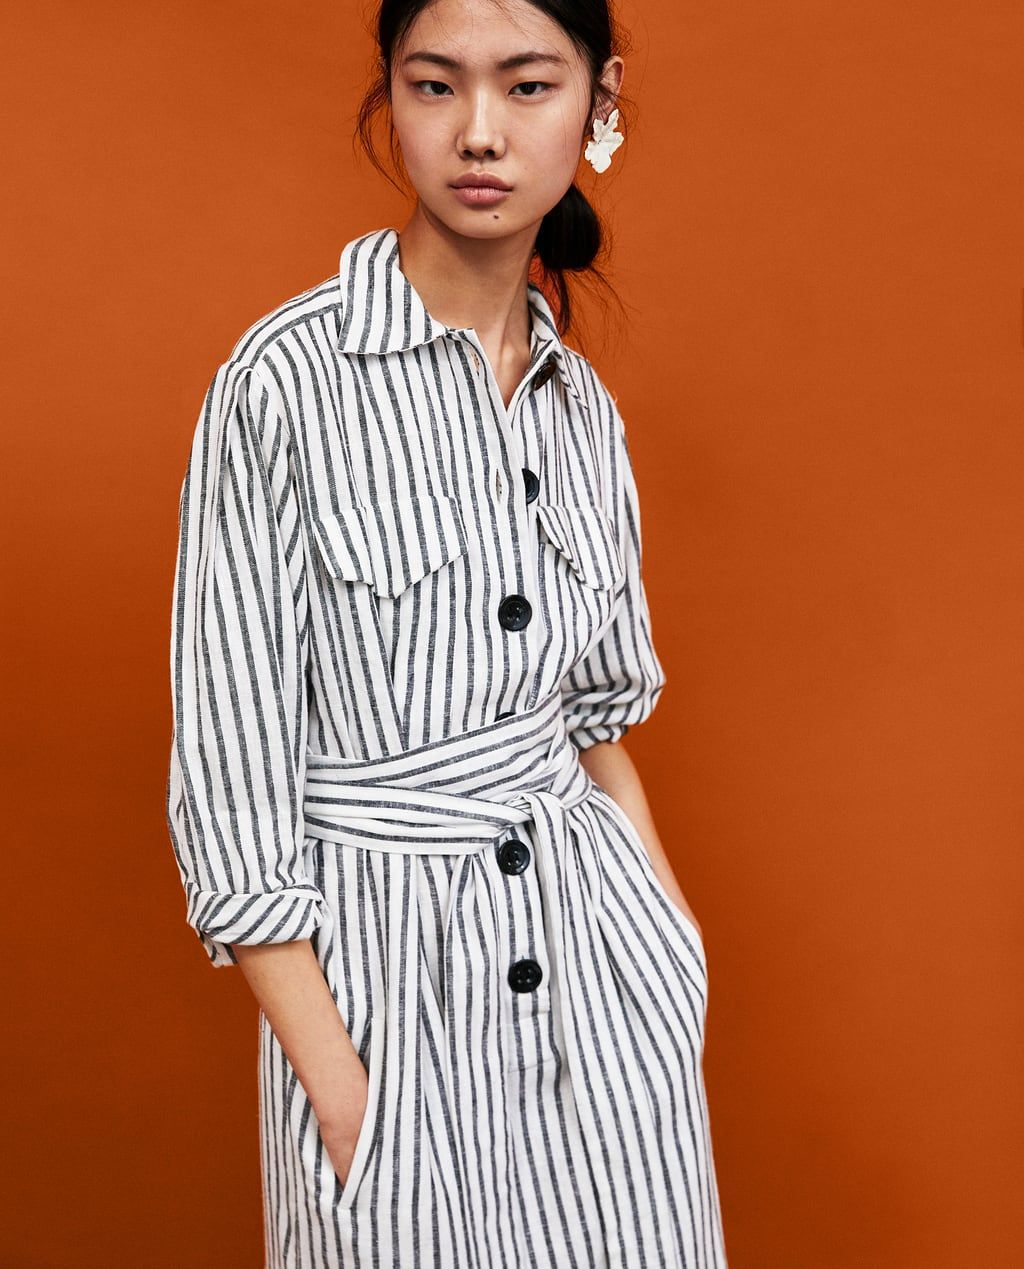 bfdab57e30 Women's Midi Dresses | New Collection Online | ZARA United States ...